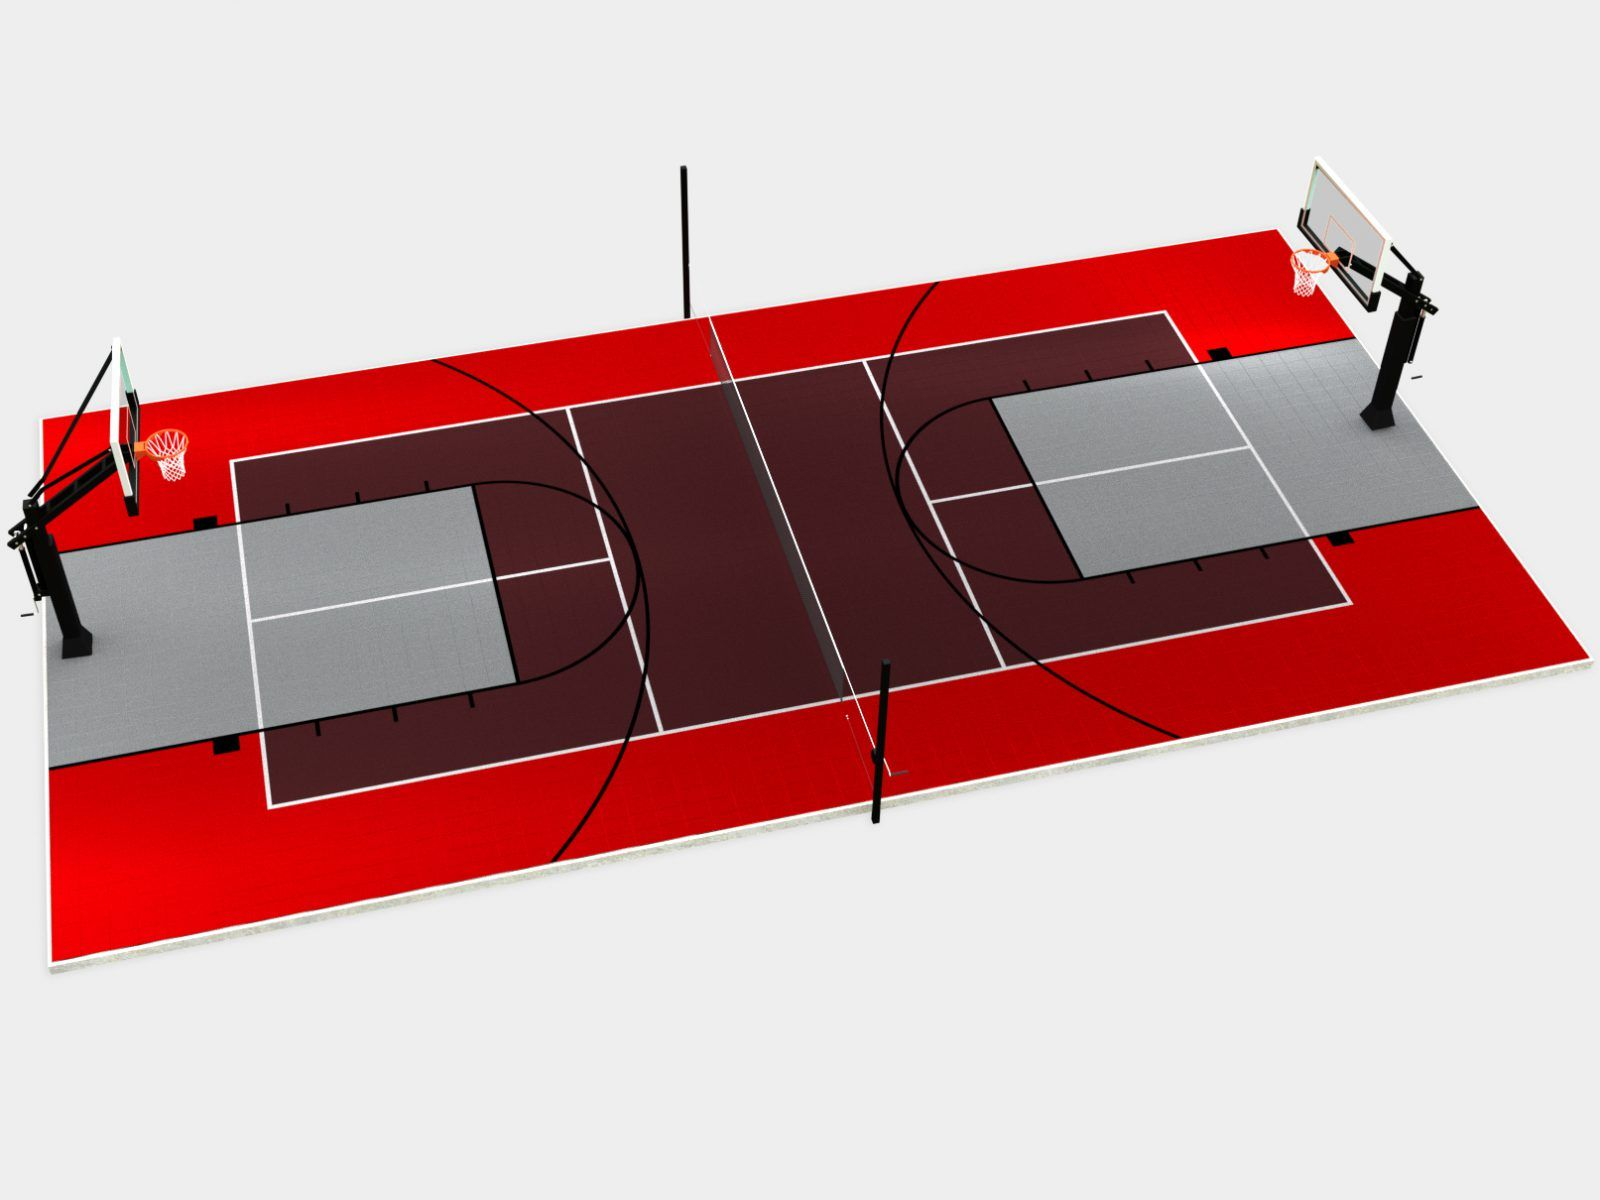 60 X 30 Full Multi Court With Tennis And Two Basketball Courts Backyard Court Diy Backyard Backyard